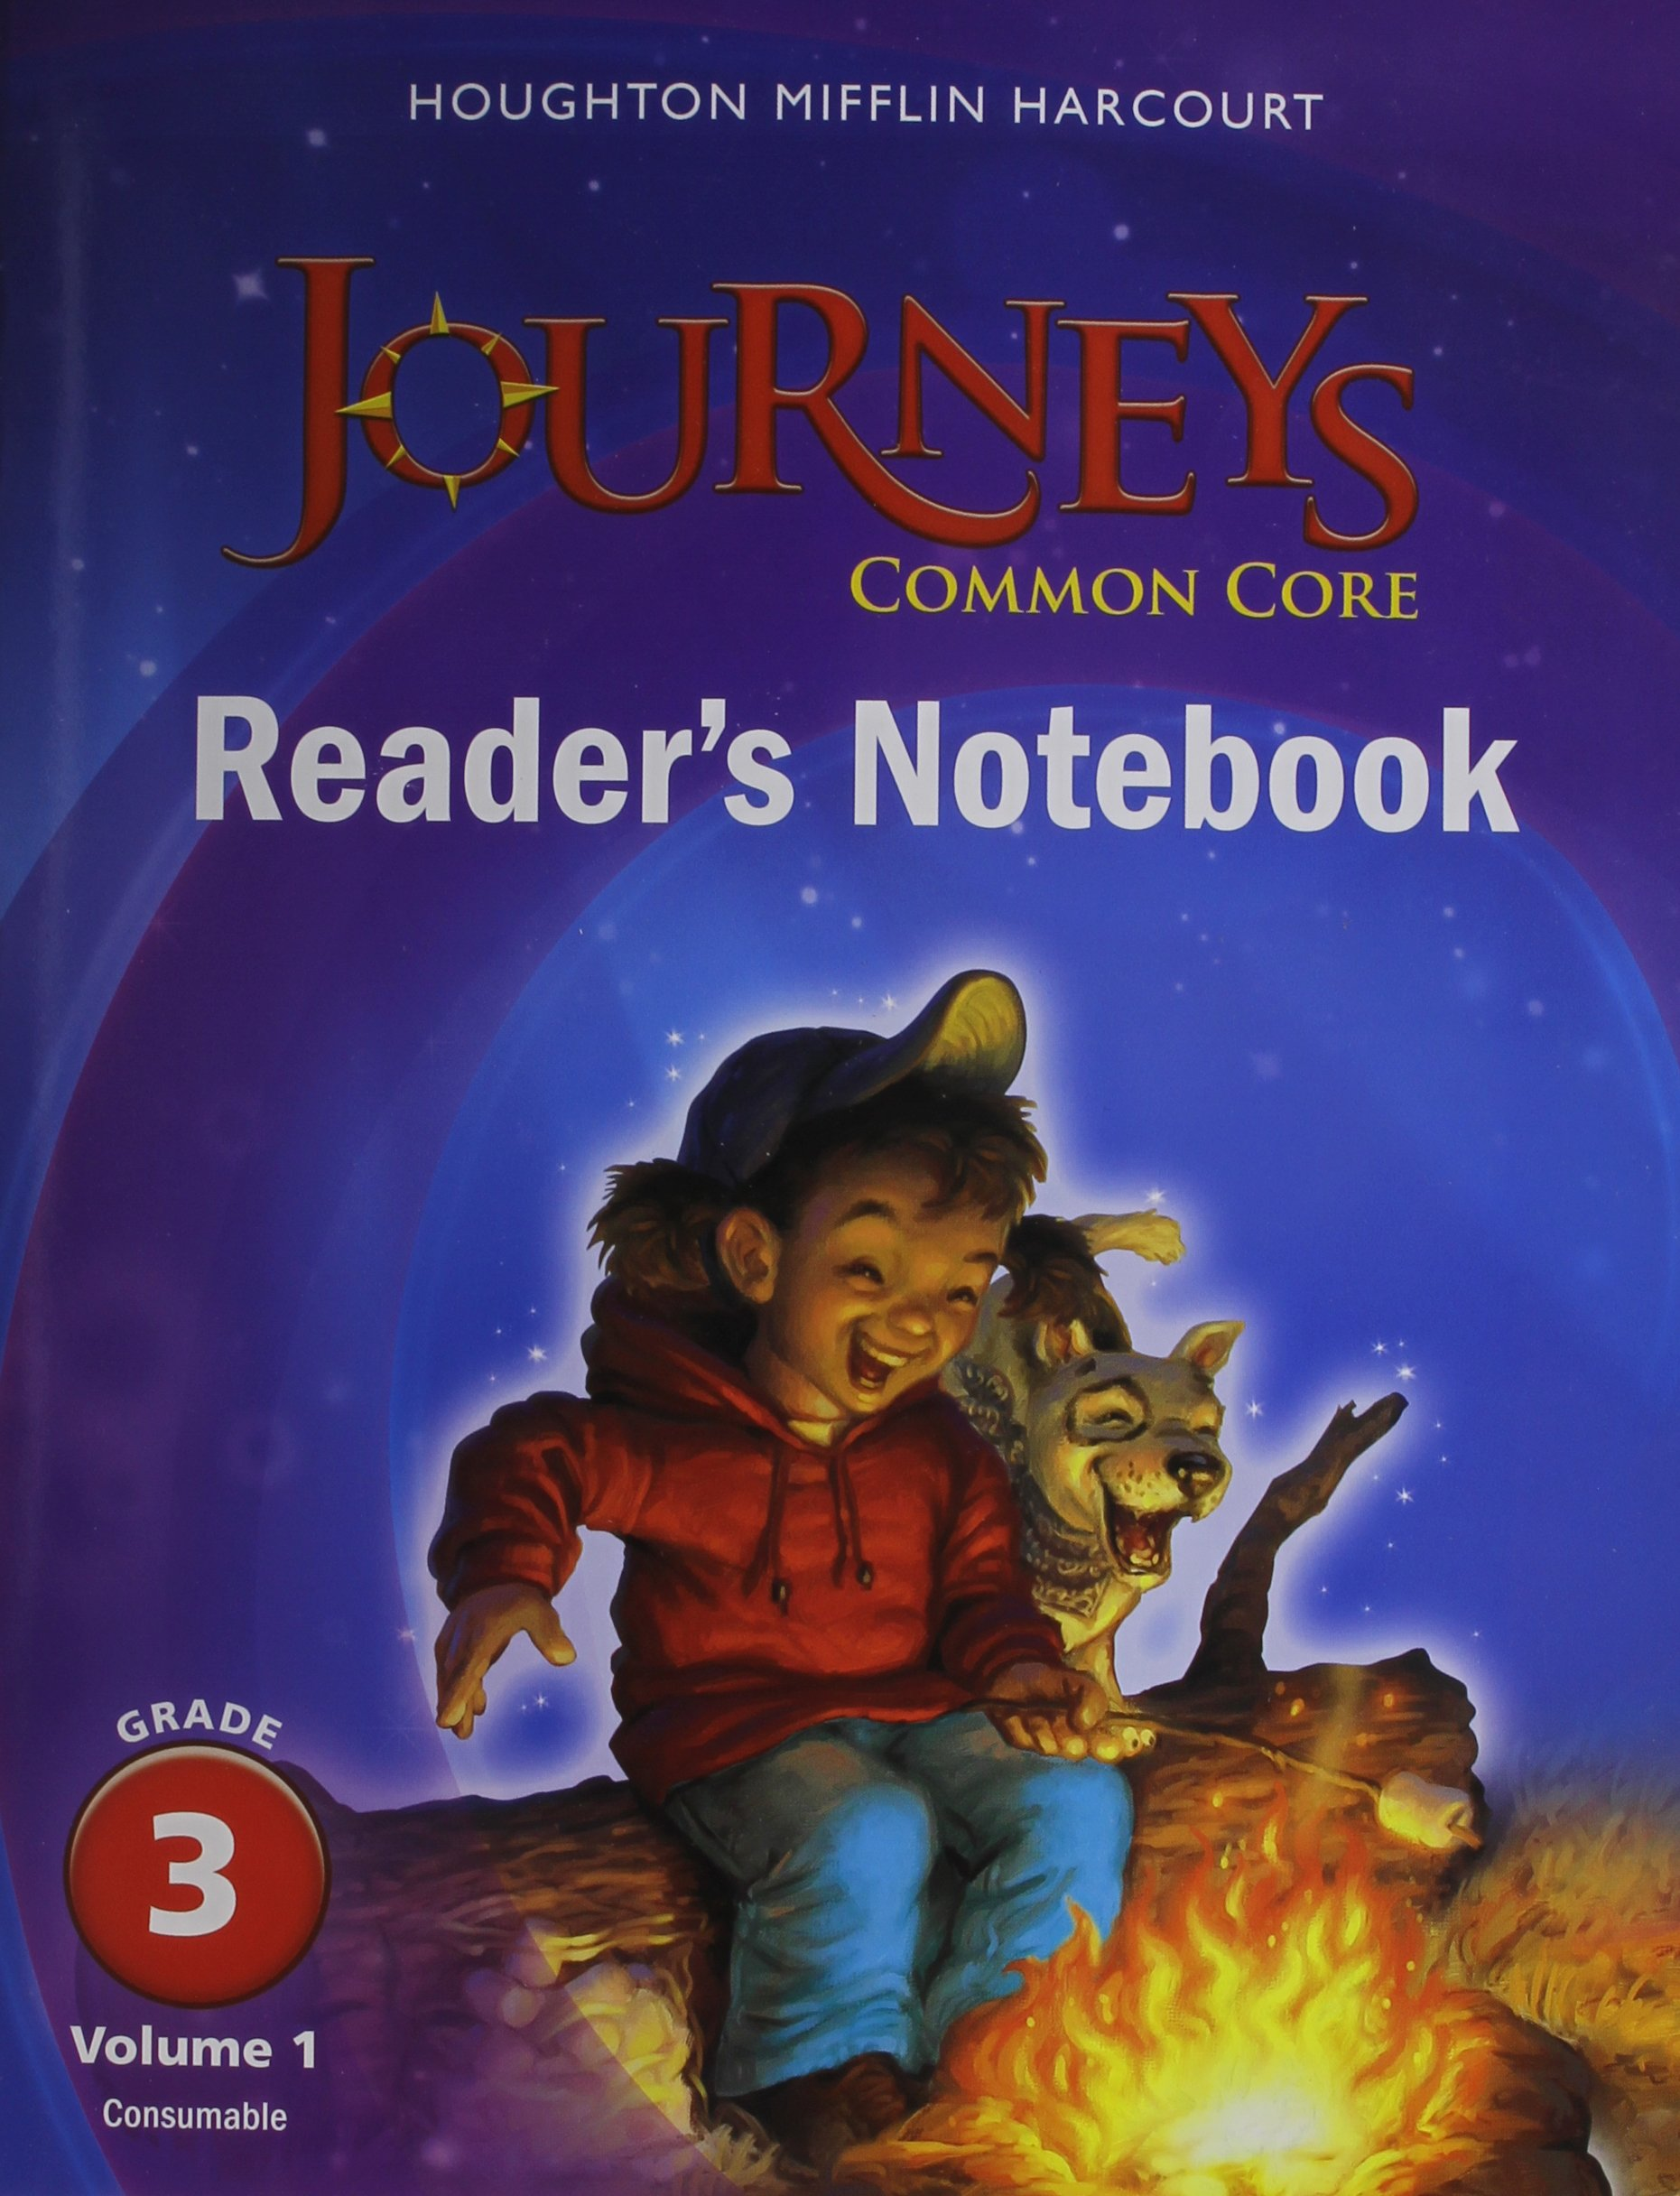 Download Journeys: Common Core Reader's Notebook Consumable Volume 1 Grade 3 ebook